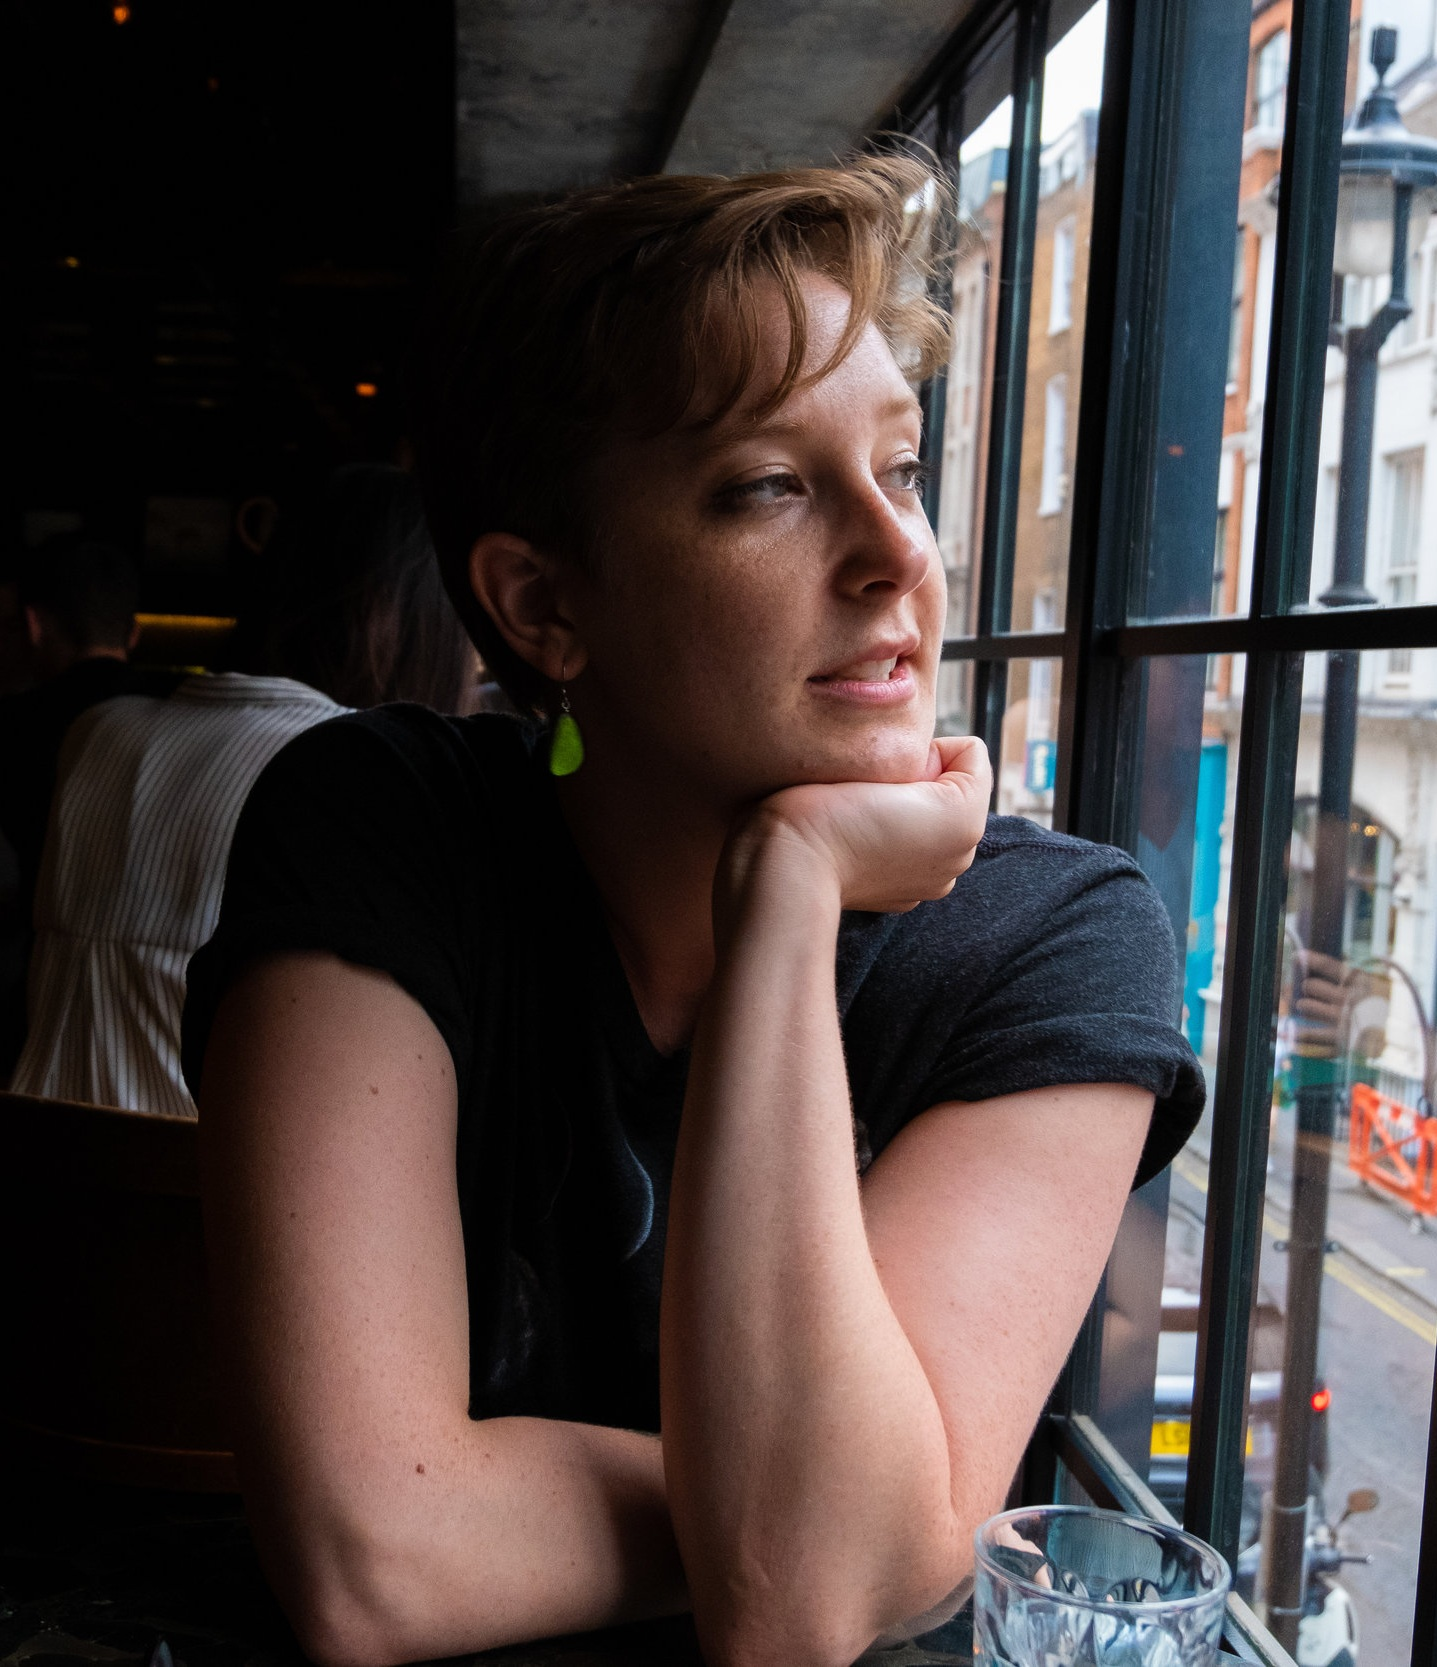 Mary Cate Curley - Mary Cate Curley is a novelist and short story writer living and working in DC. Her work has appeared in Monkeybicycle, Barrelhouse, River & Sound Review, and Eleven Eleven Review, among others, and her story